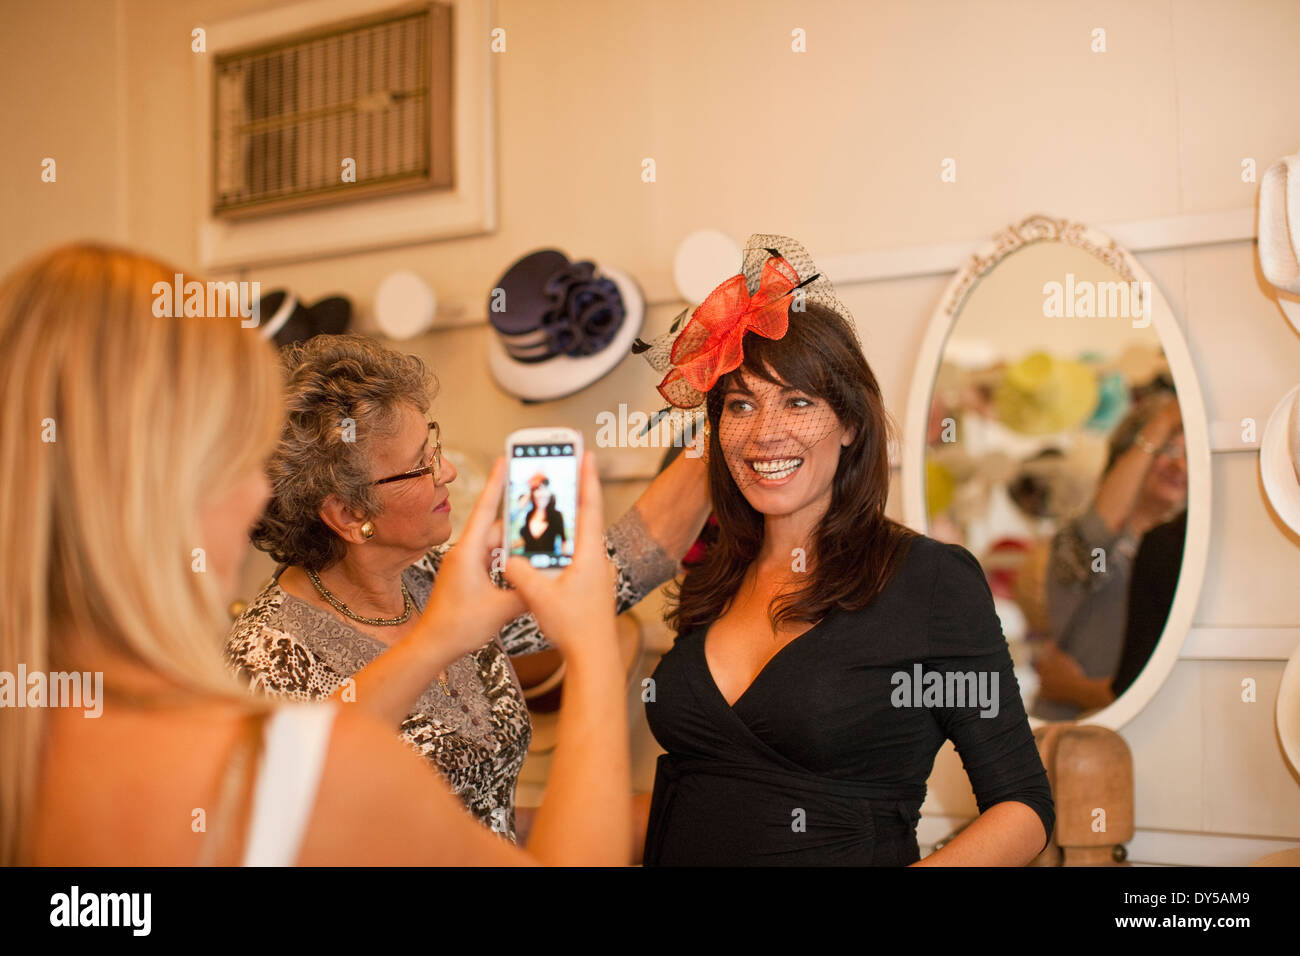 Woman being photographed in traditional milliners shop - Stock Image